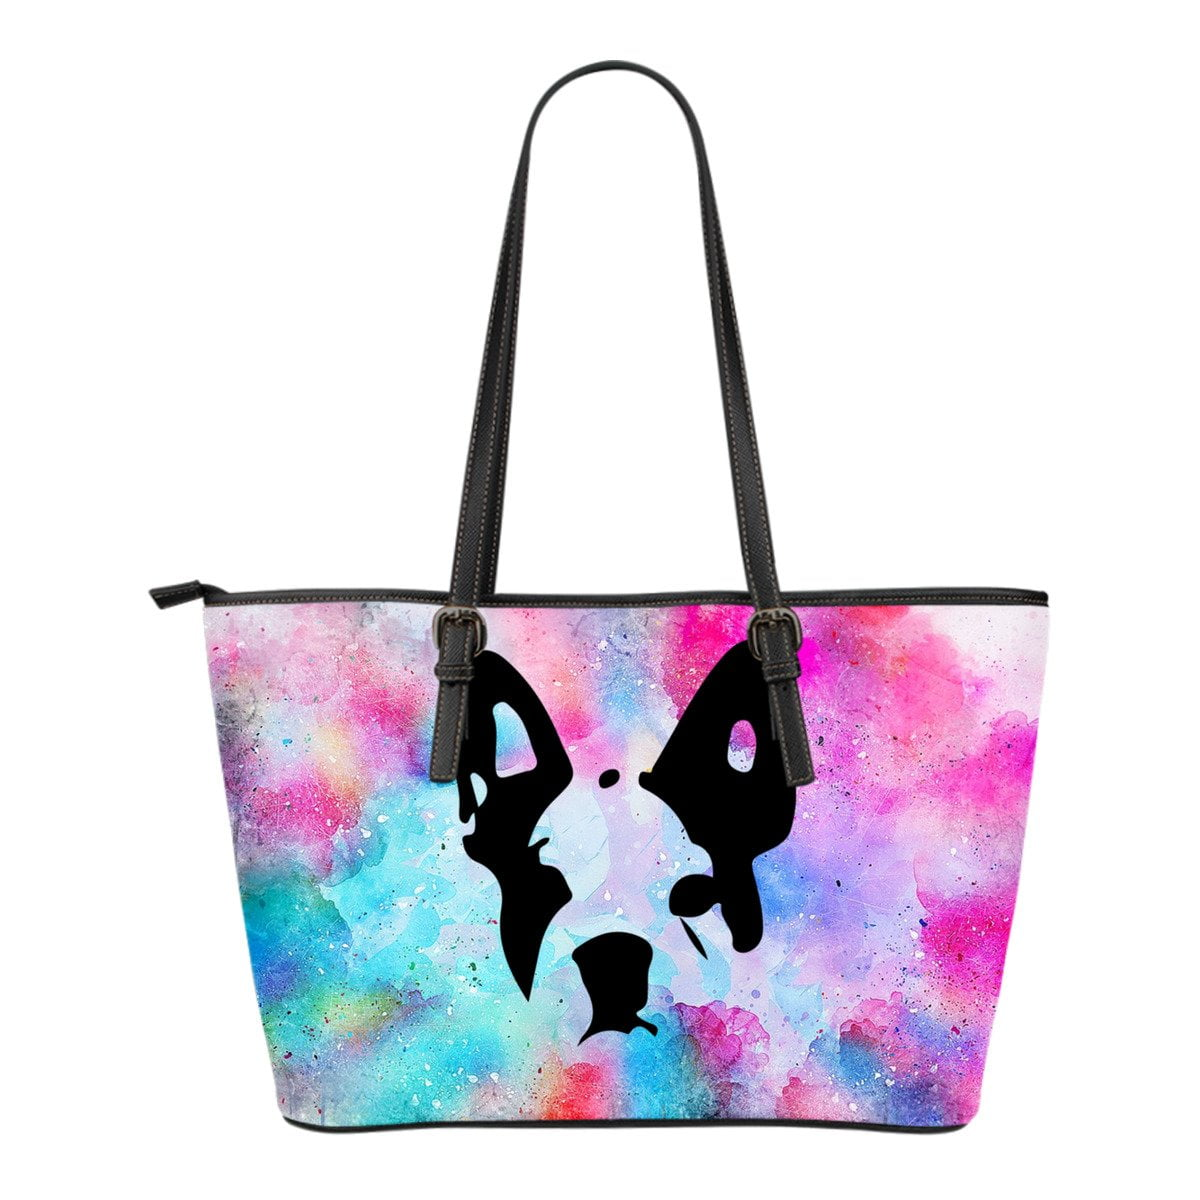 Leo - Bag - Frenchie Bulldog Shop